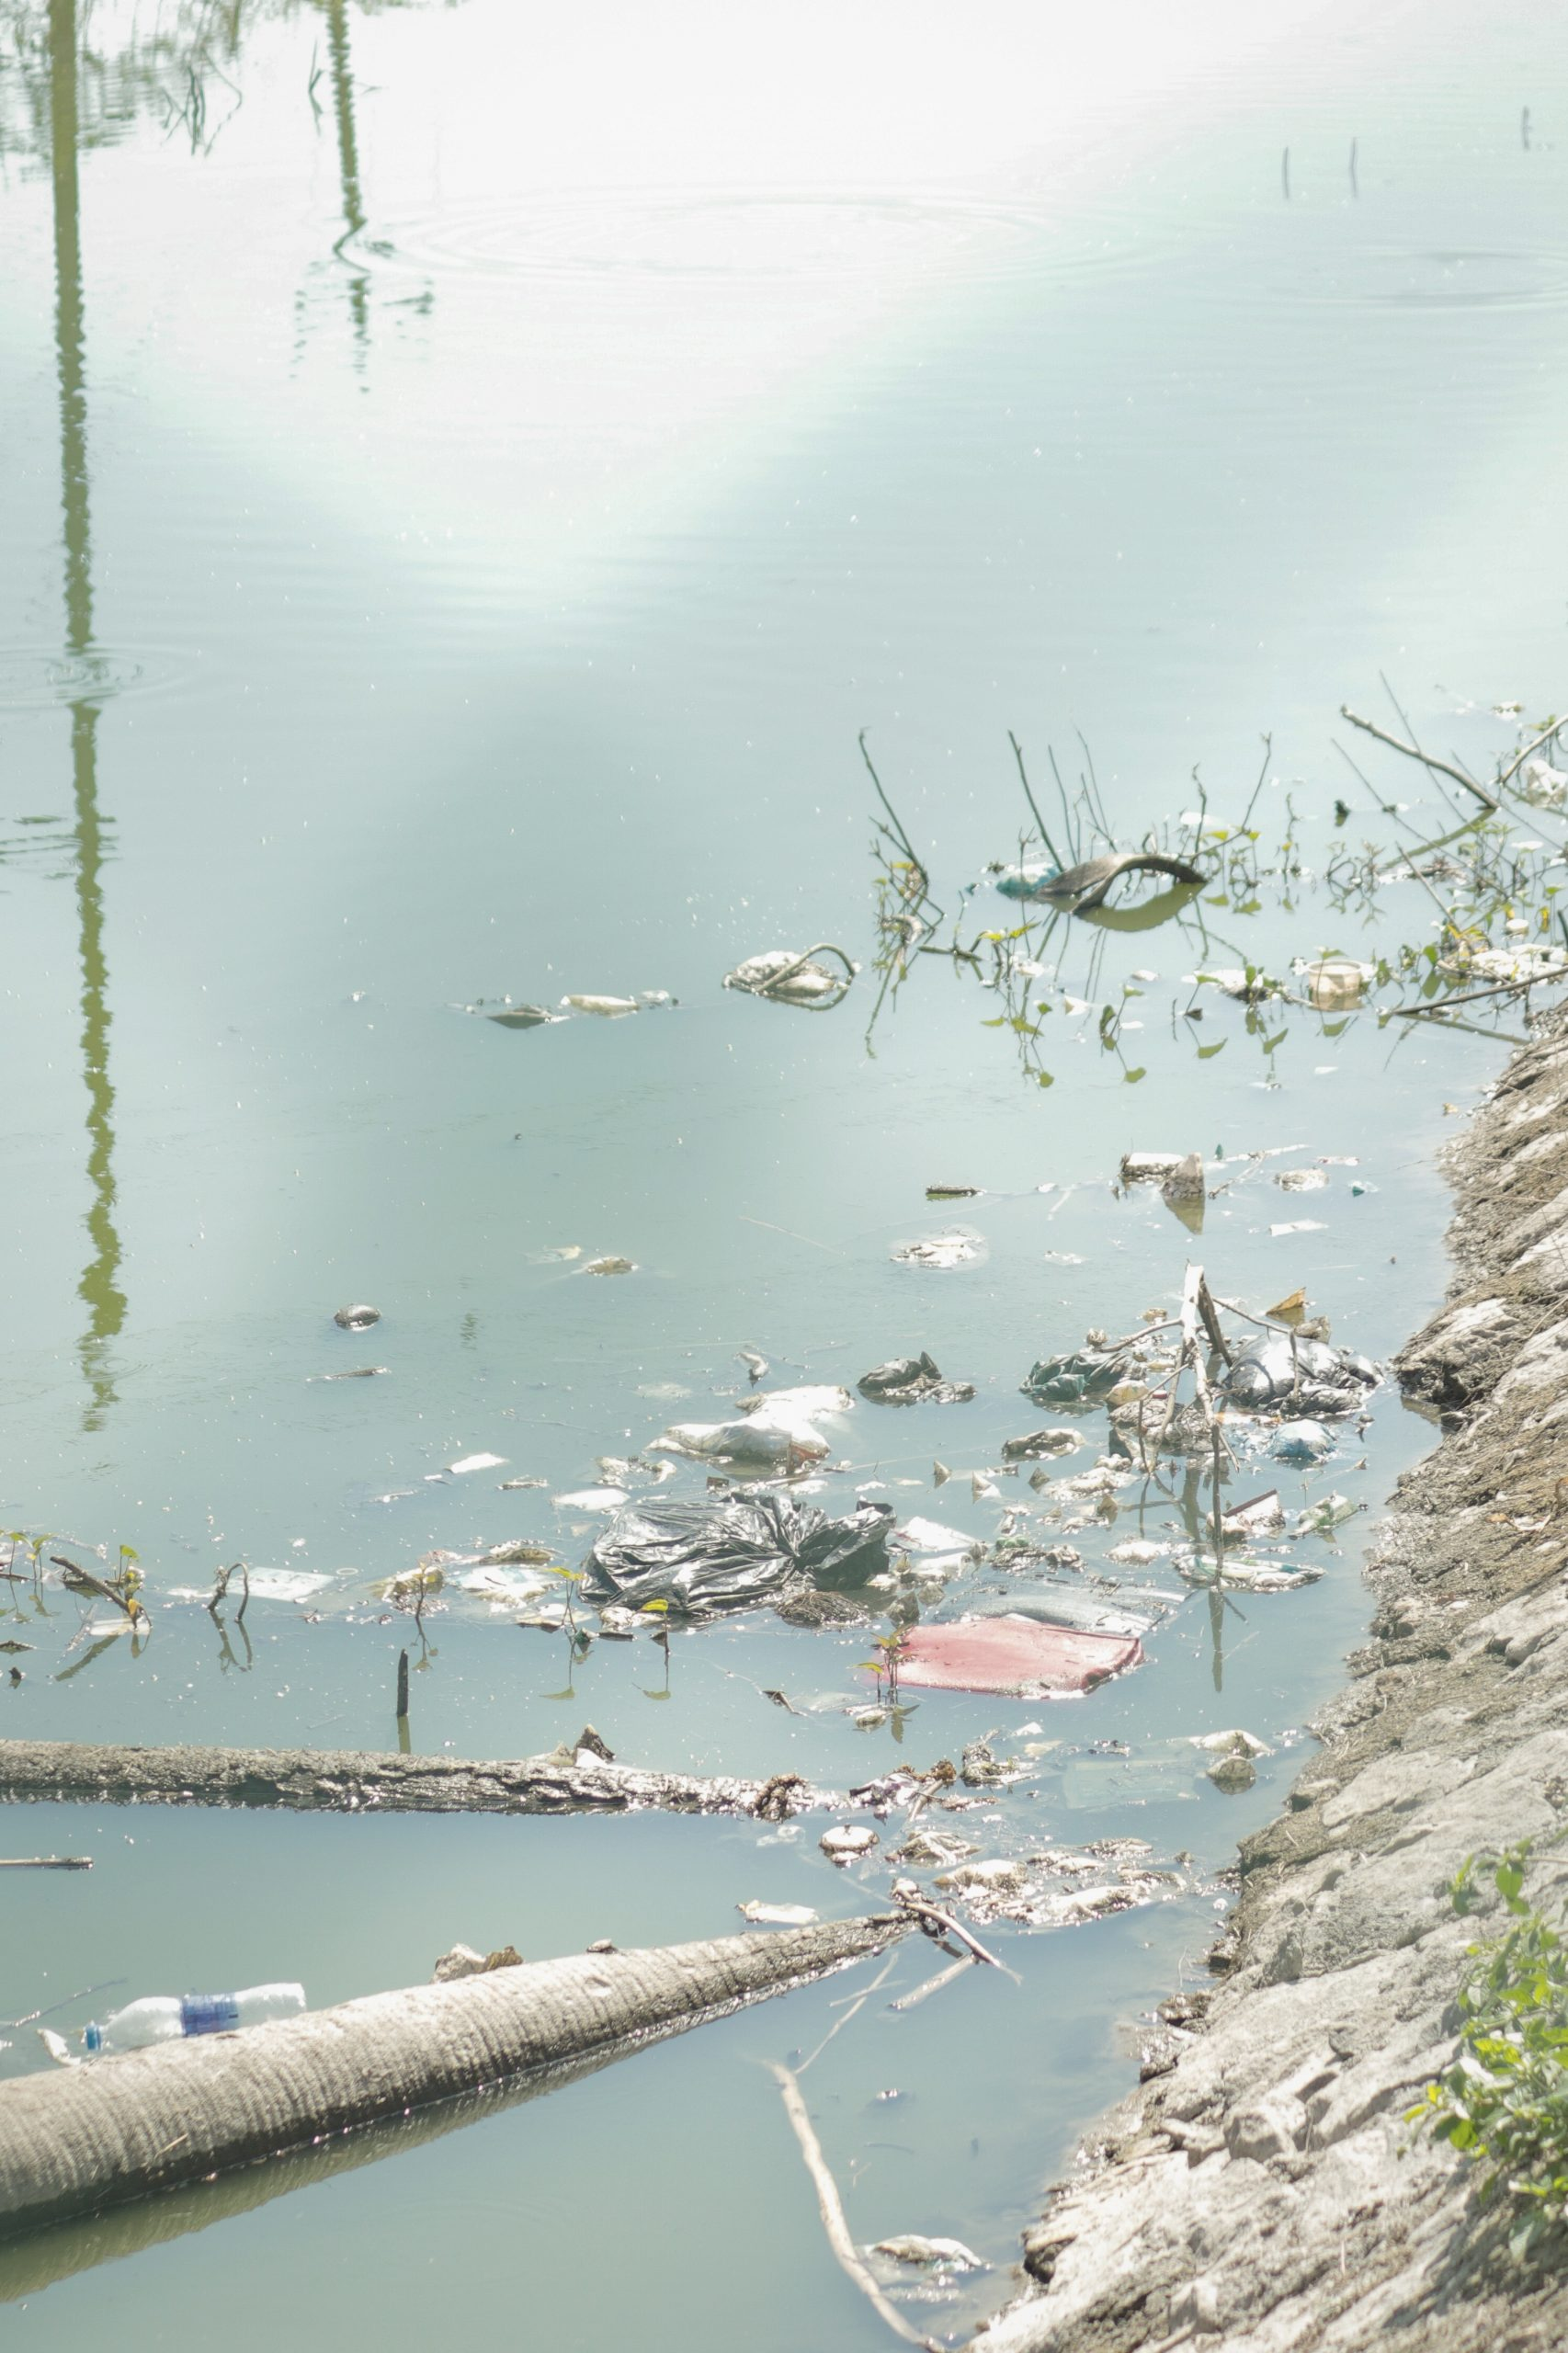 Water pollution in the river